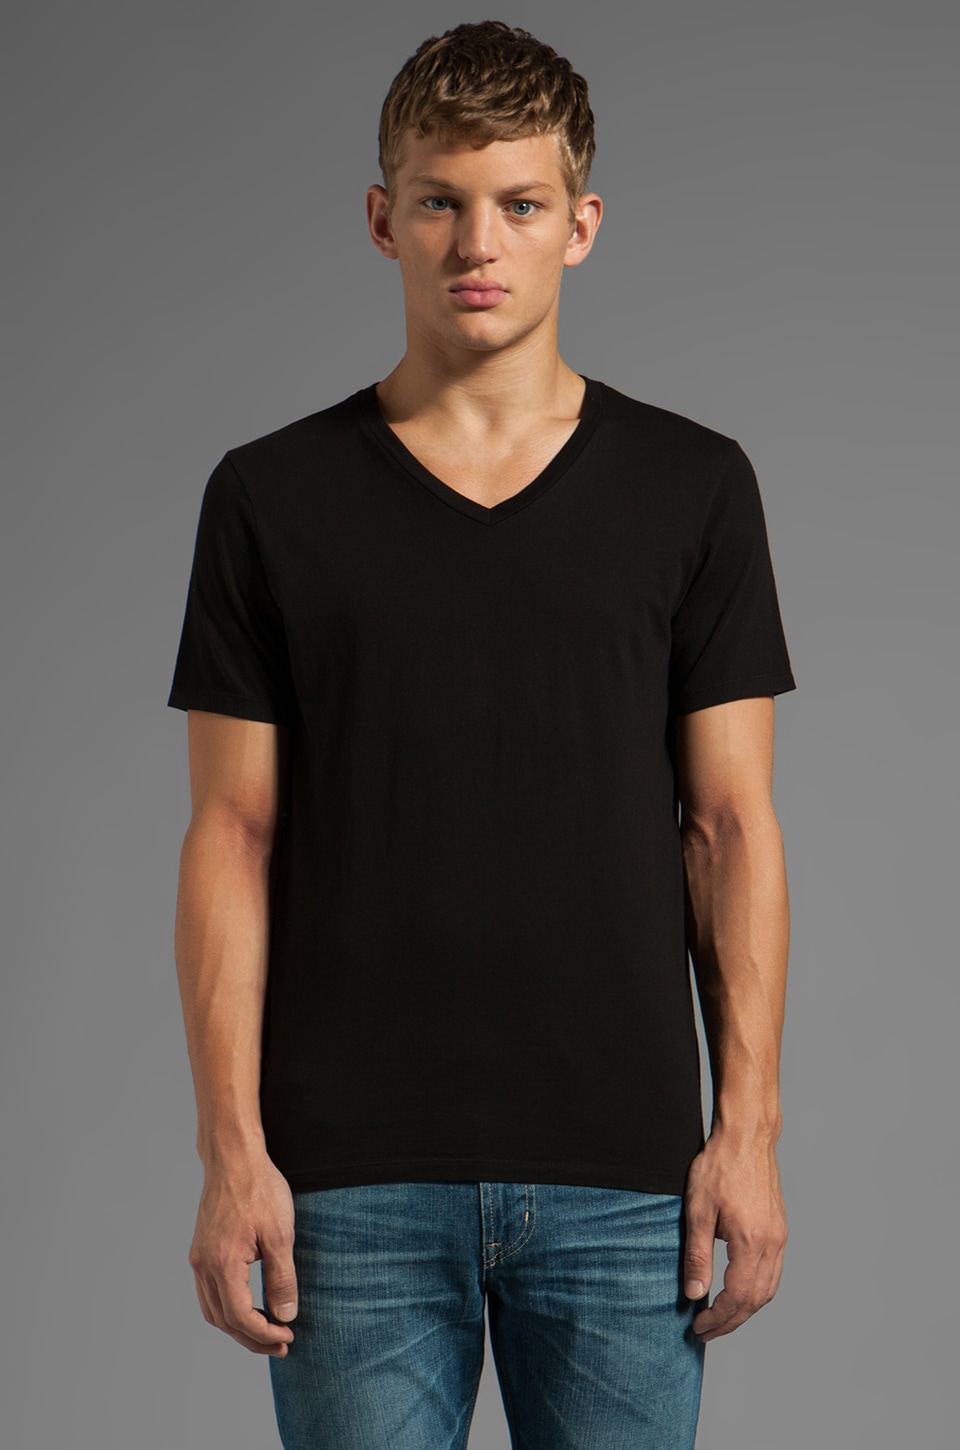 AG Adriano Goldschmied Standard V Neck in Black